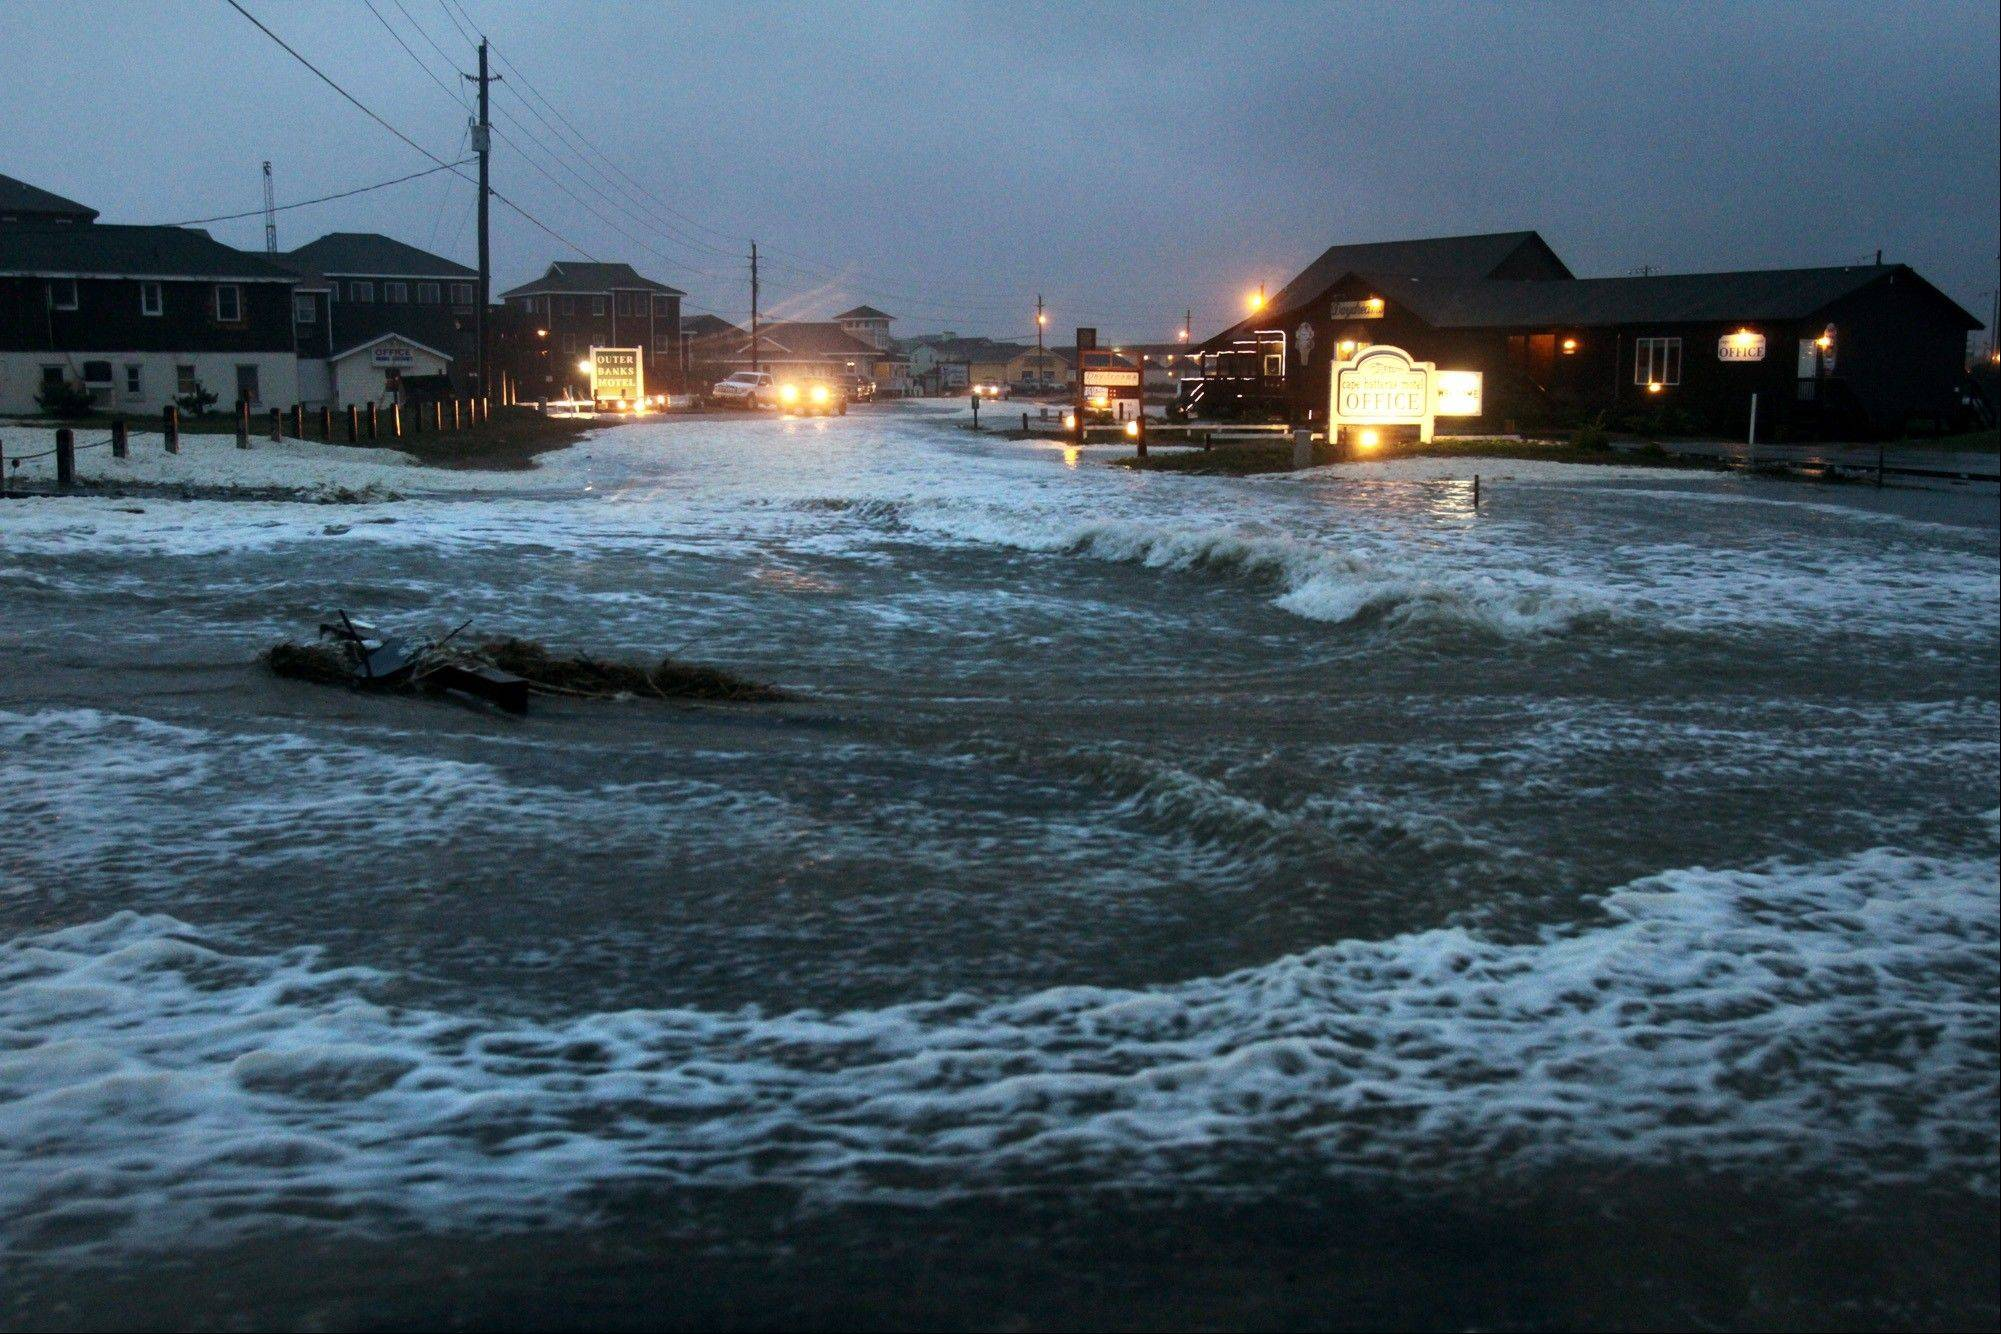 Ocean water rolls over state highway NC 12 in Buxton, N.C., on Hatteras Island at dawn on Sunday as Hurricane Sandy works its way north, battering the U.S. East Coast.